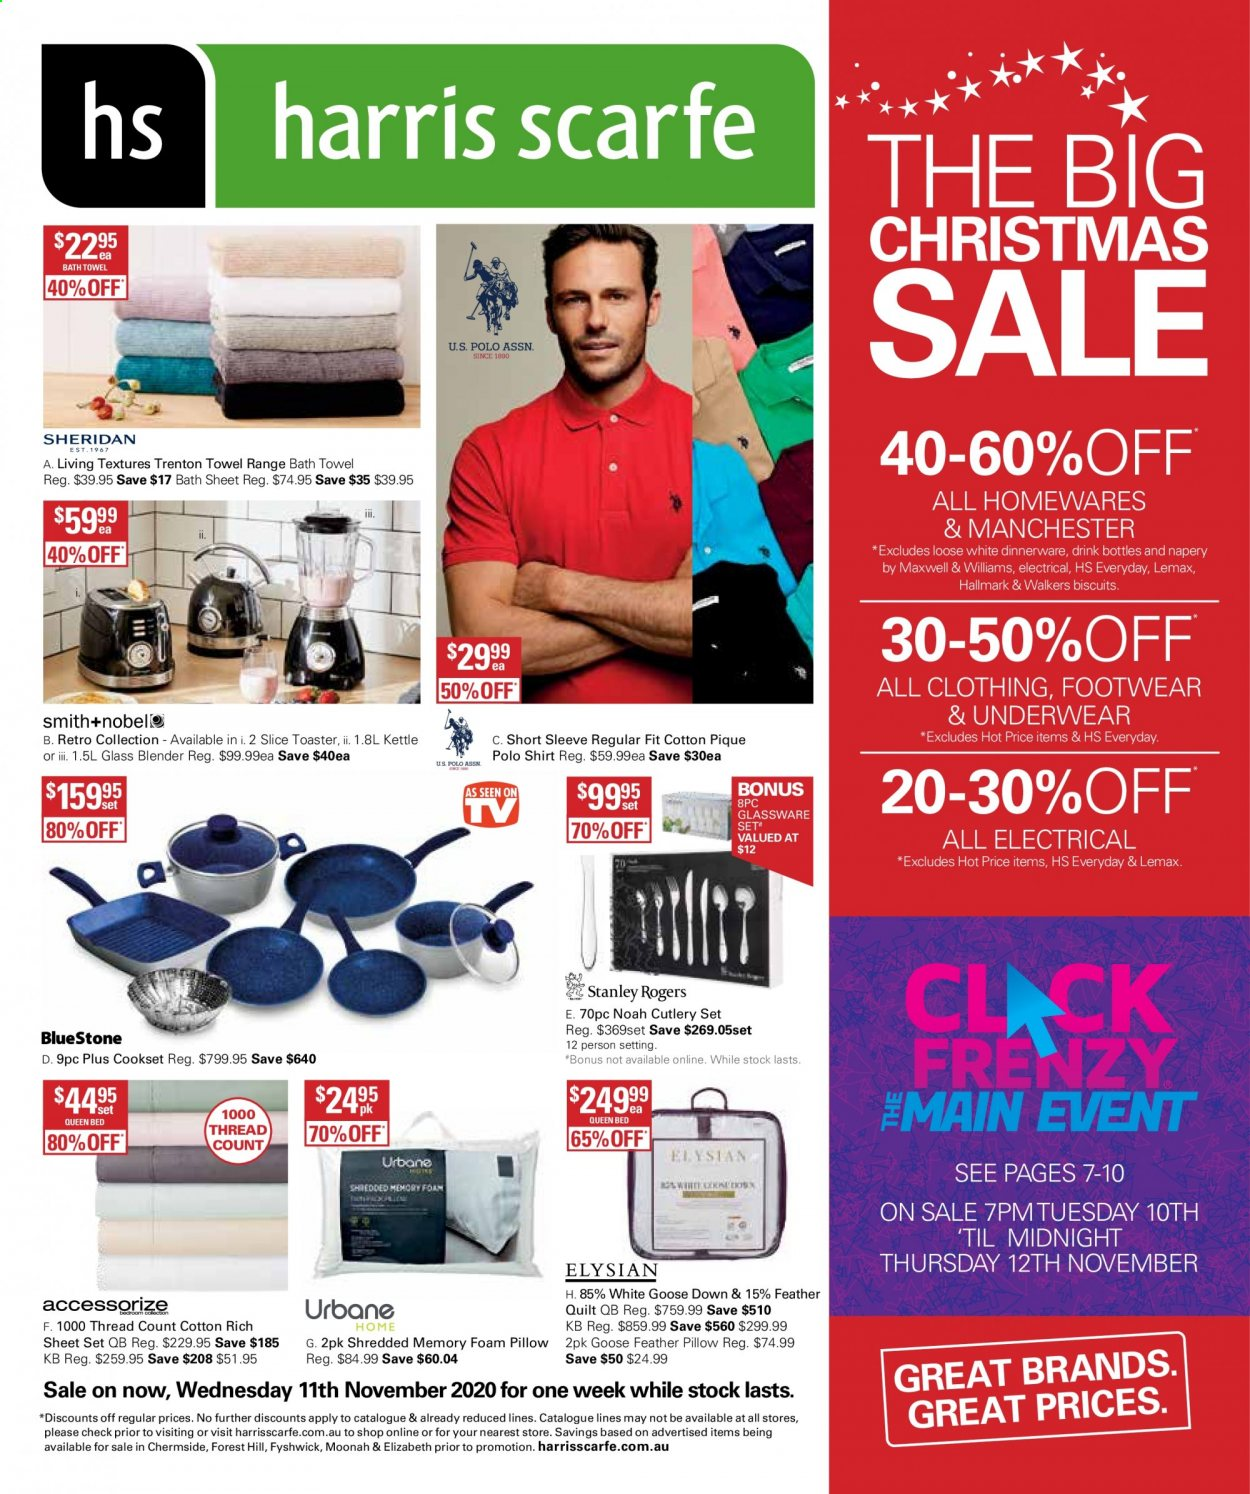 Harris Scarfe Catalogue - Sales products - dinnerware set, glassware set, cutlery set, glass, sheet, pillow, quilt, foam pillow, bath sheet, bath towel, towel, blender, toaster, kettle, Lemax, shirt, underwear, bed. Page 1.